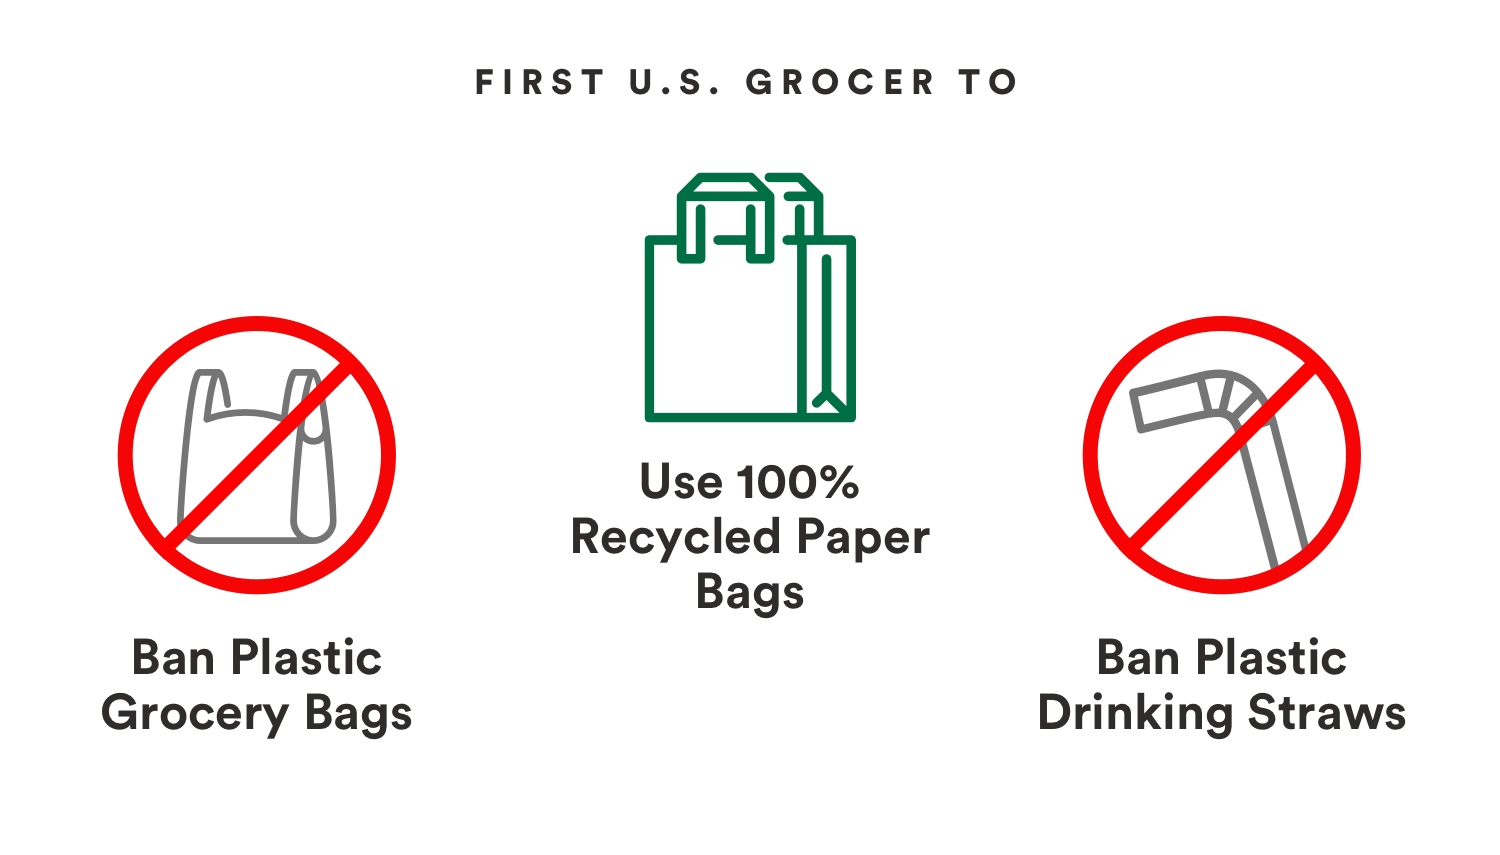 First US grocer to ban plastics grocery bags and plastic straws, and use 100% recycled paper bags